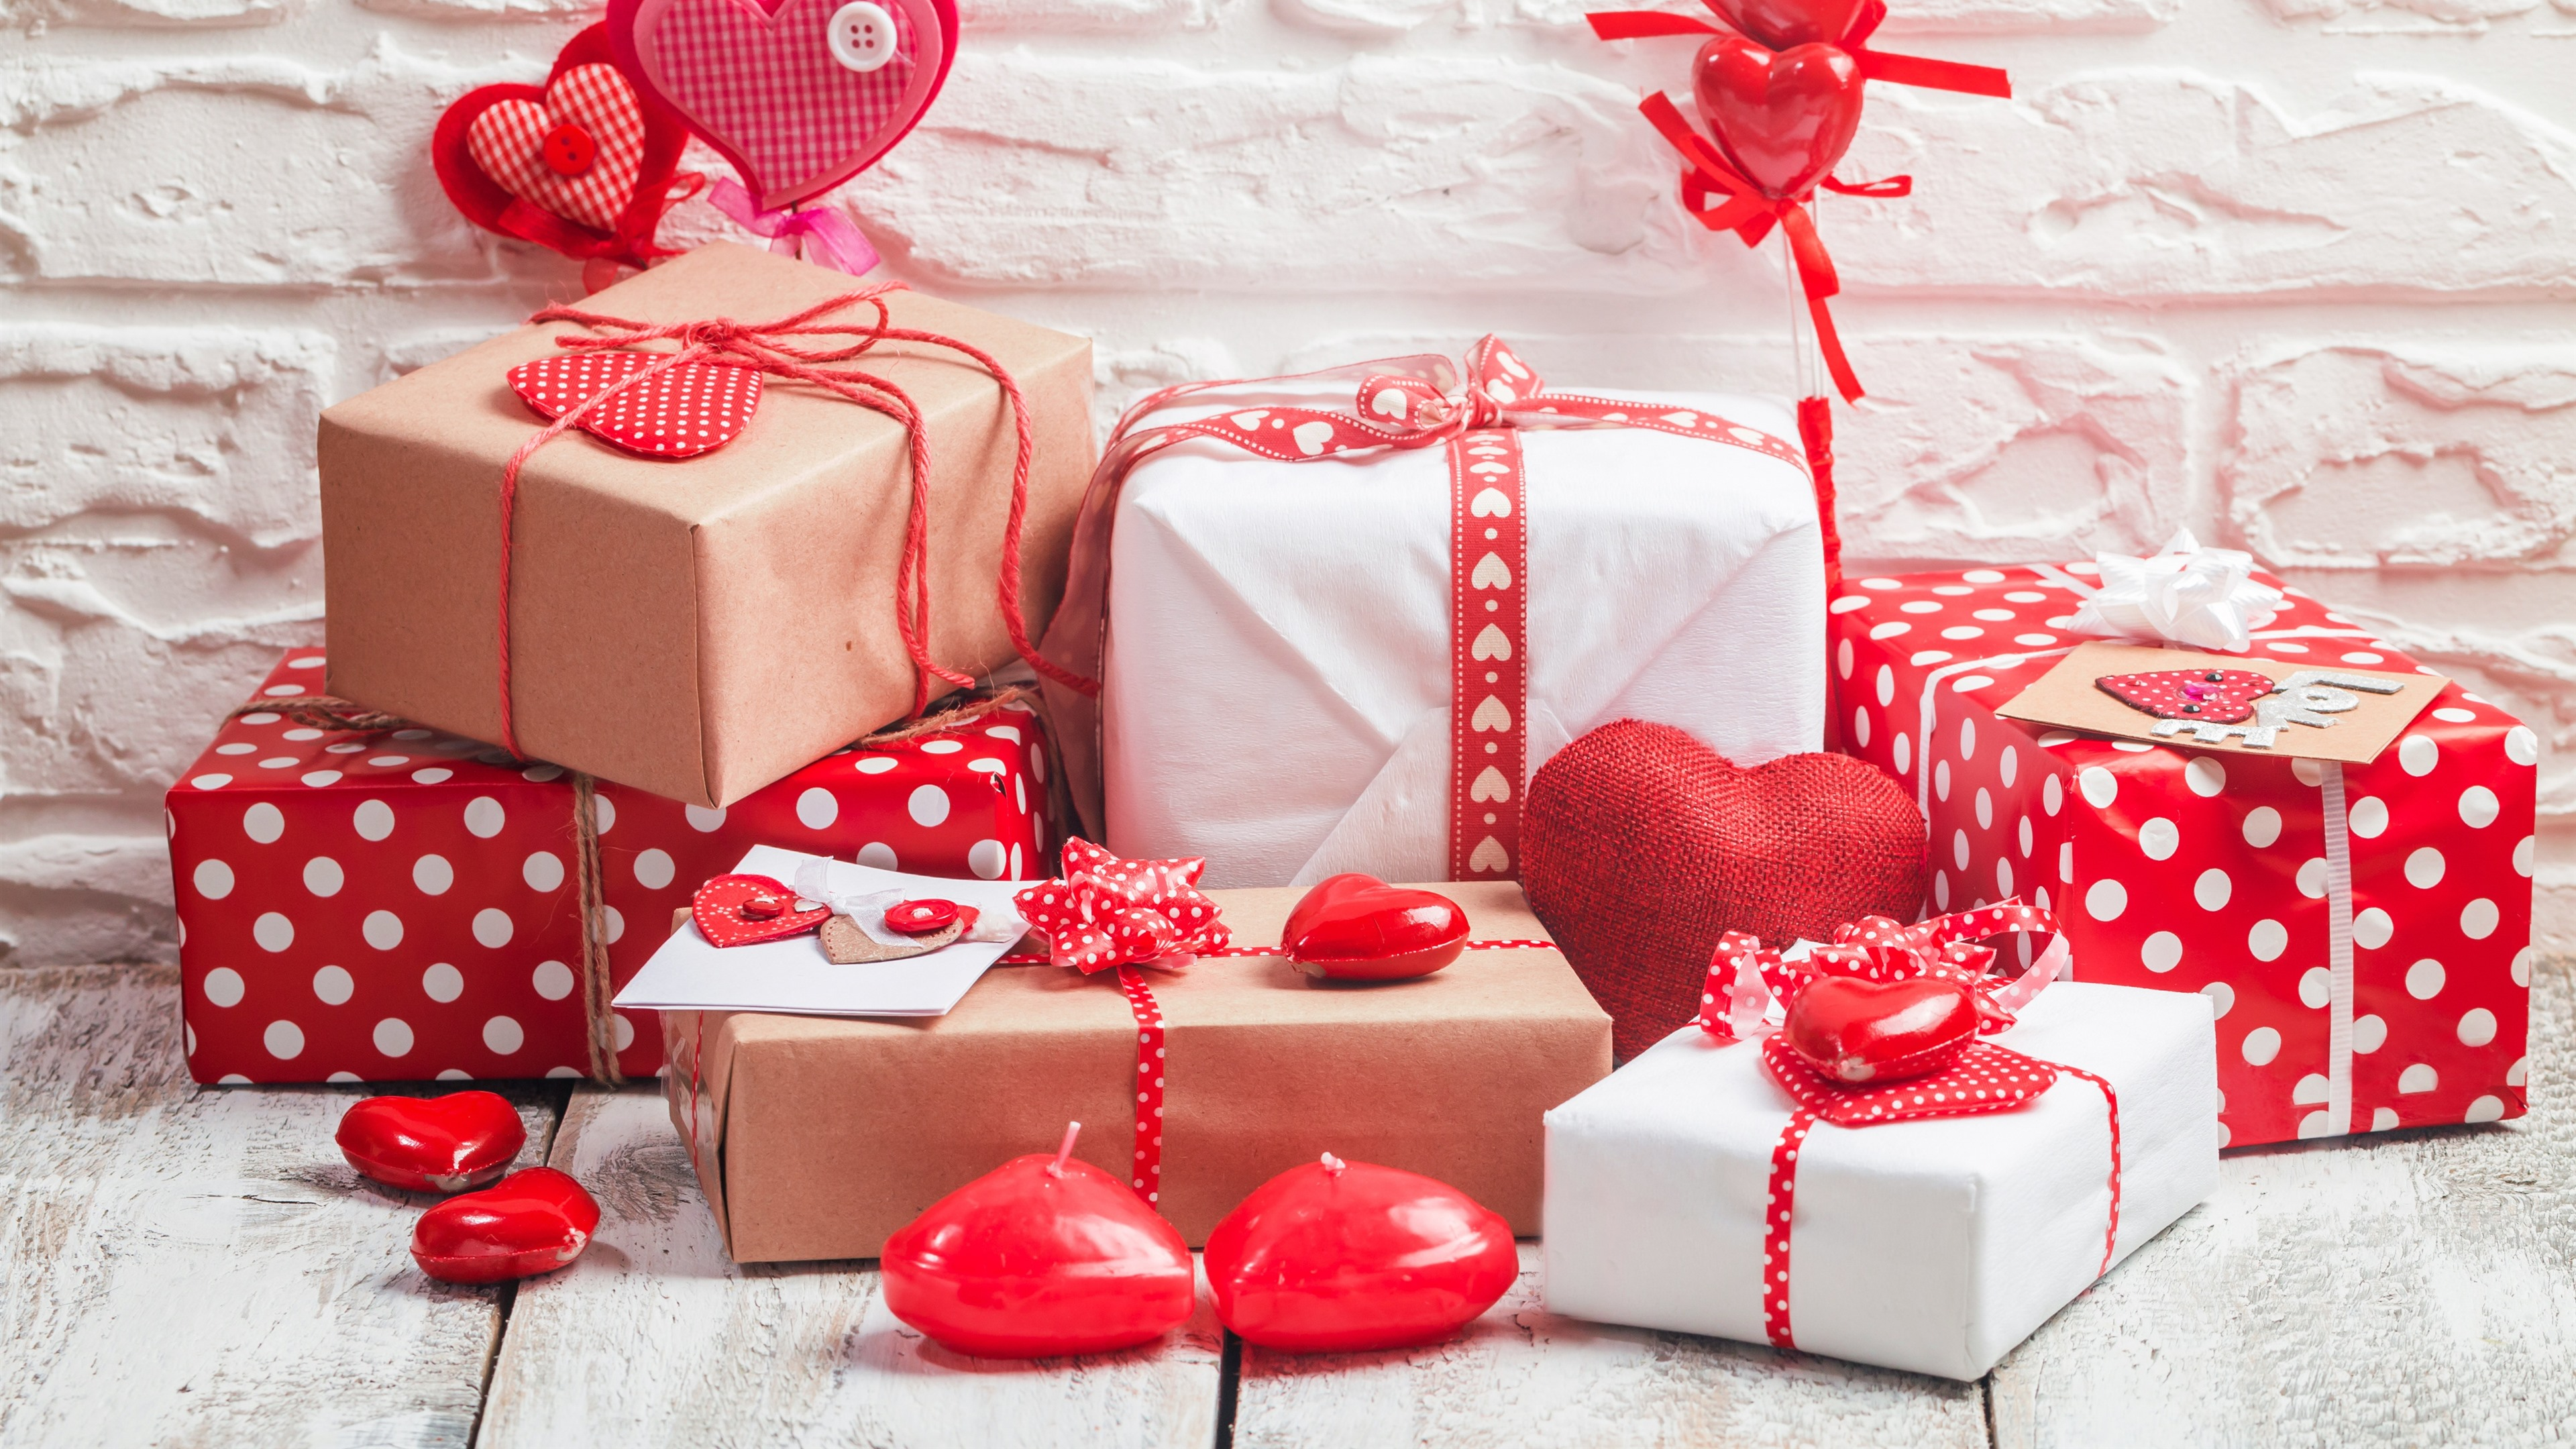 Wallpaper Gifts And Love Hearts Wall Background 3840x2160 Uhd 4k Picture Image